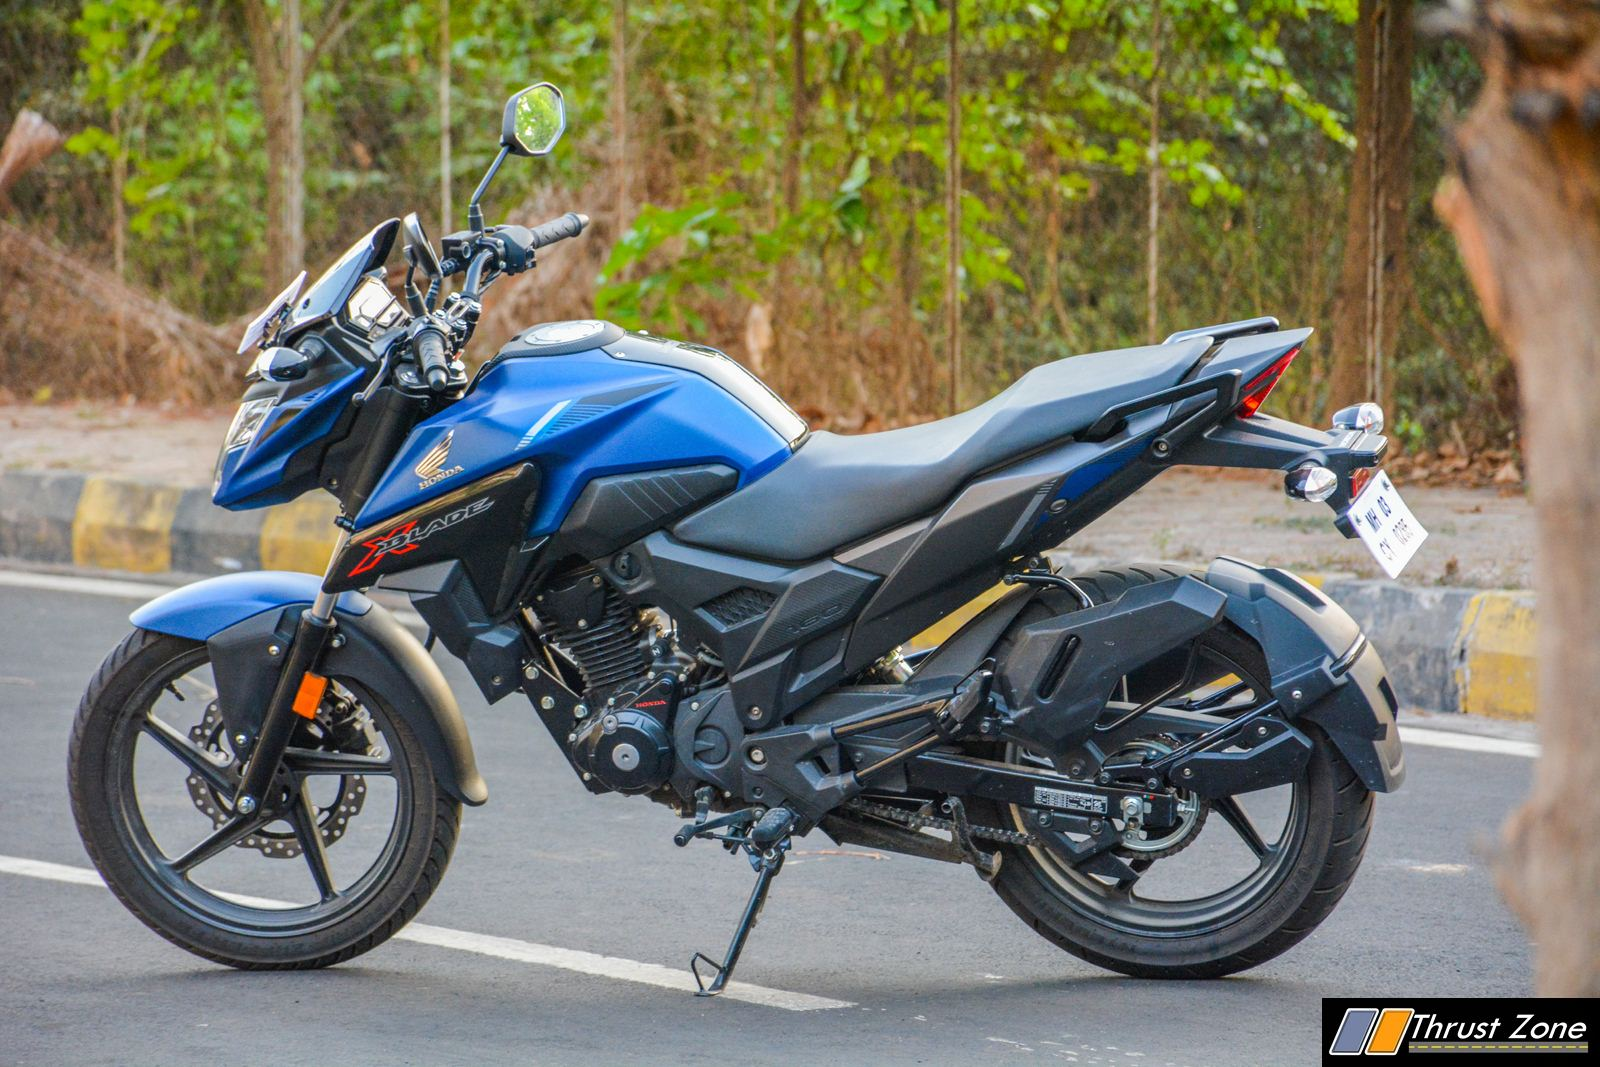 https://www.thrustzone.com/wp-content/uploads/2018/05/2019-Honda-XBlade-160-Review-5.jpg